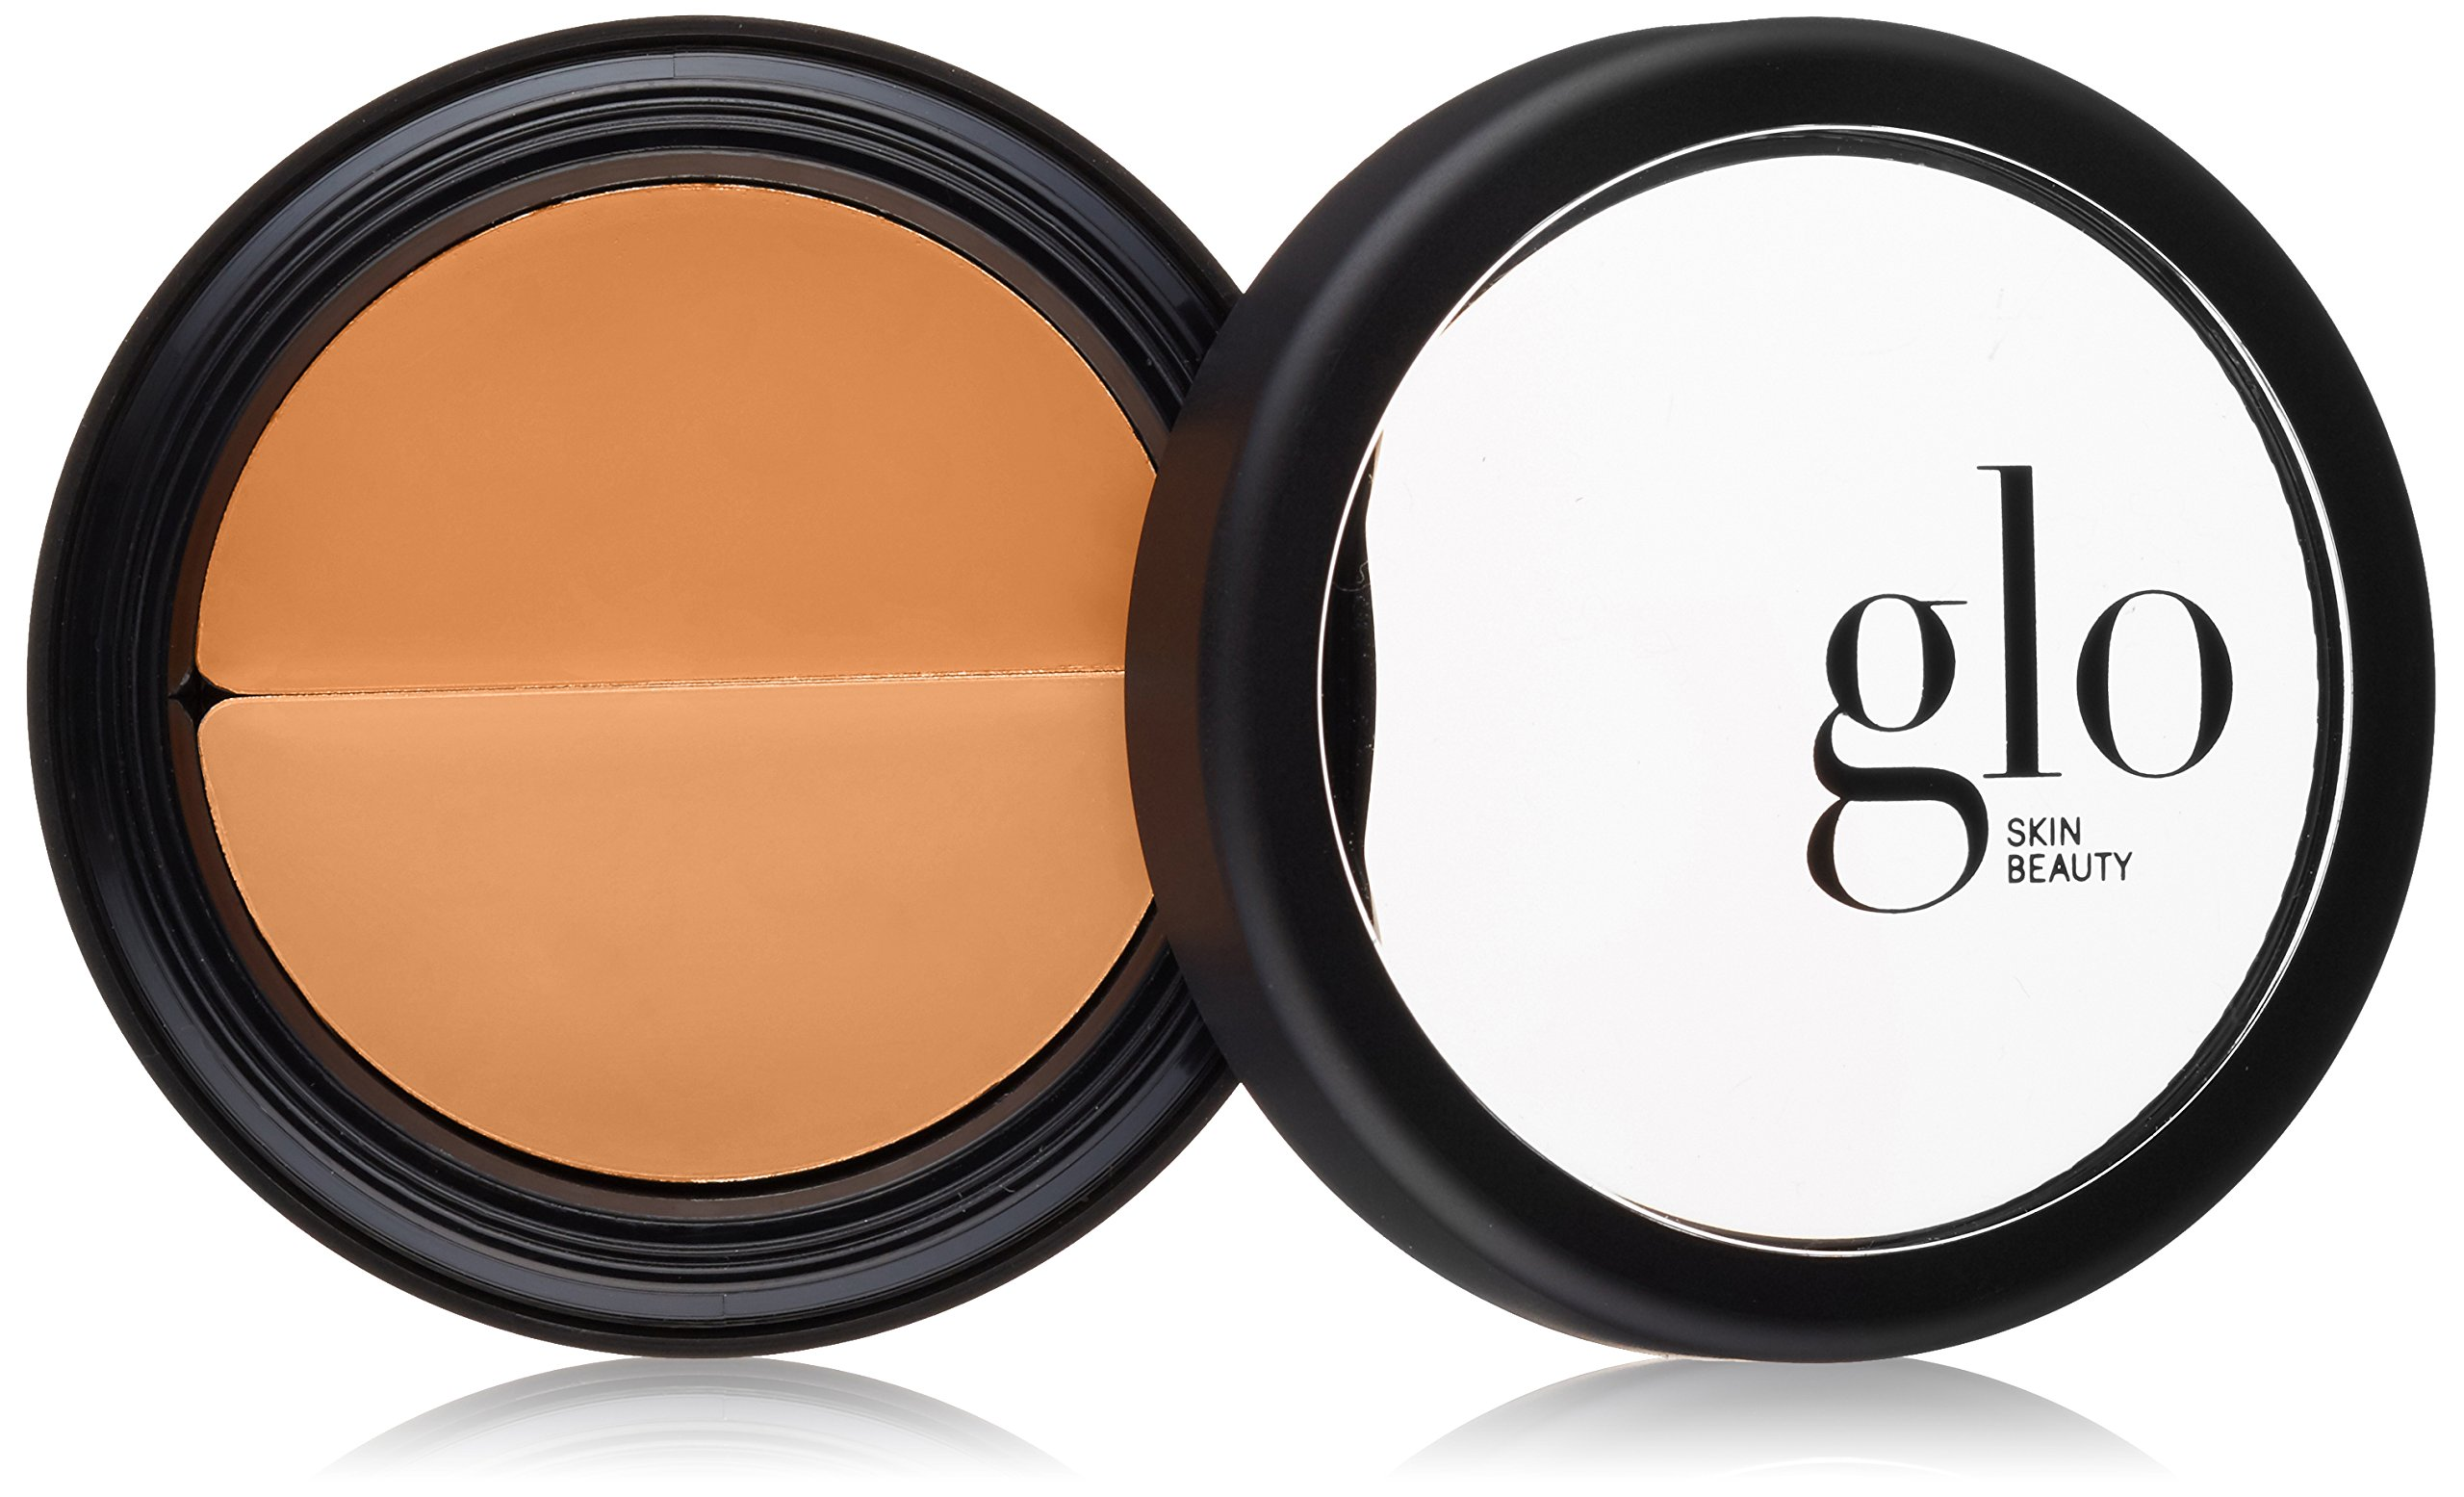 Glo Skin Beauty Under Eye Concealer - Honey - Mineral Makeup Concealer, 4 Shades | Cruelty Free